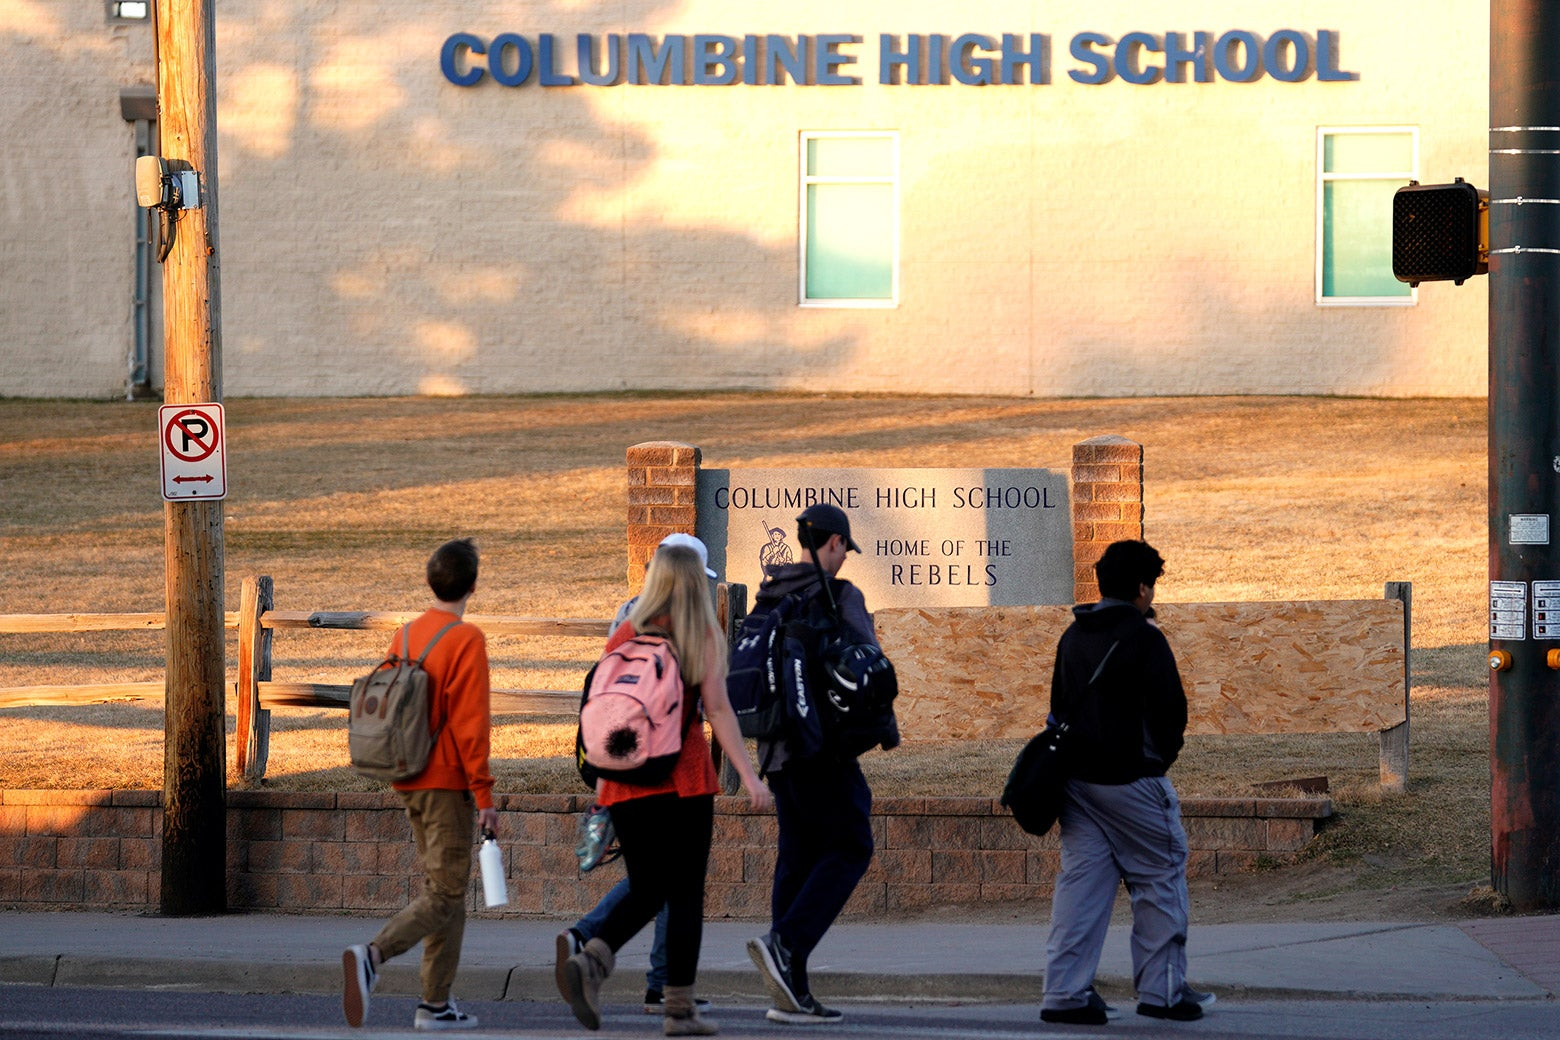 Students arrive for class at Columbine High School on March 14, 2018.